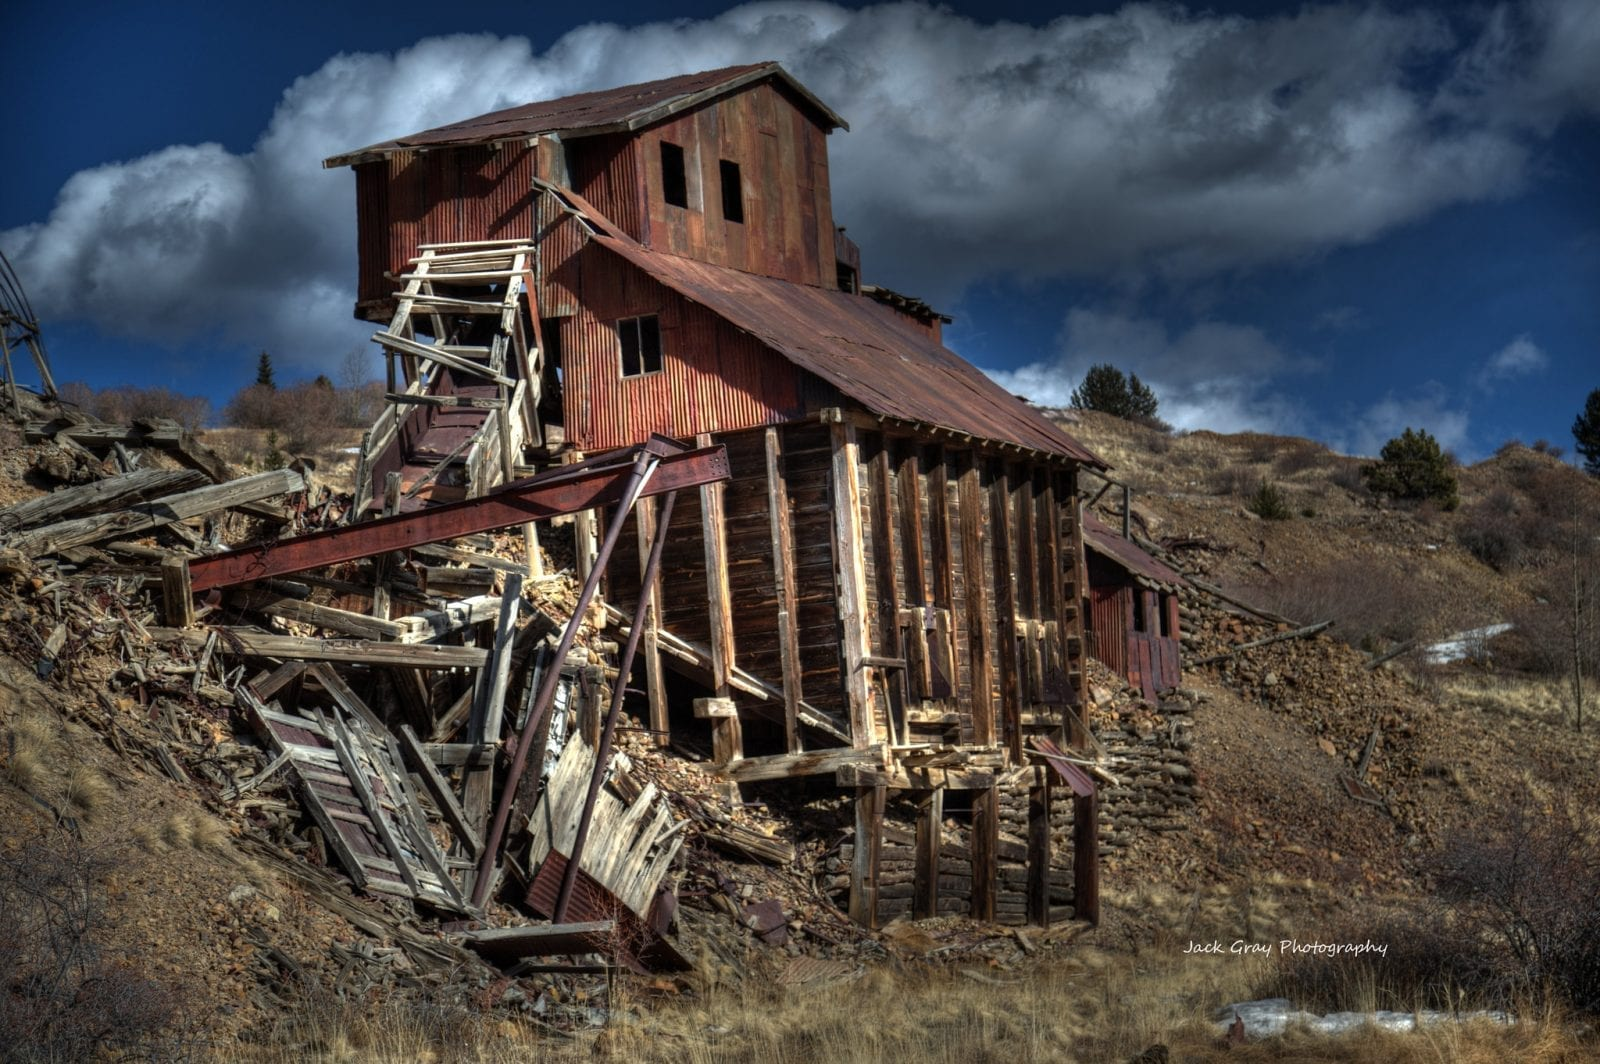 Image of a collapsing structure in the ghost town of Goldfield in Colorado